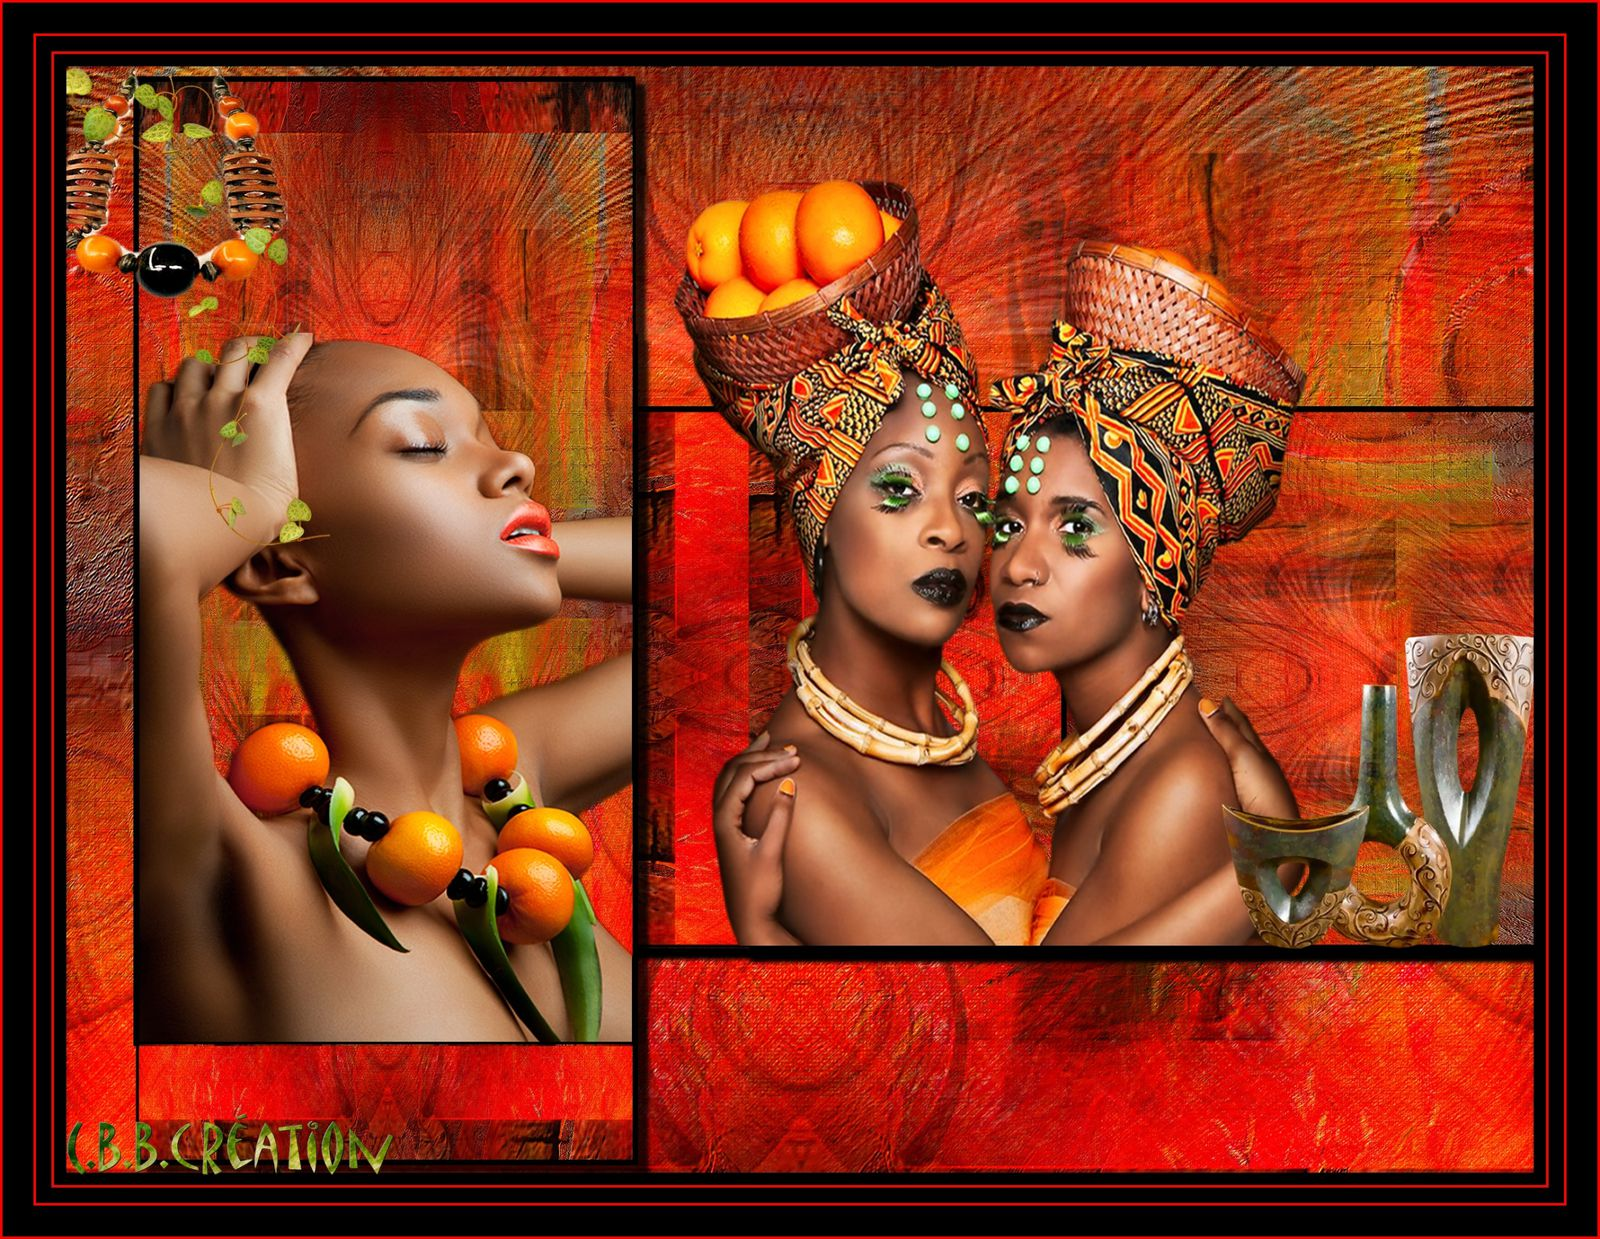 http://idata.over-blog.com/3/91/86/55/TENDRESSE/COULEUR-AFRICAINE/482.jpg